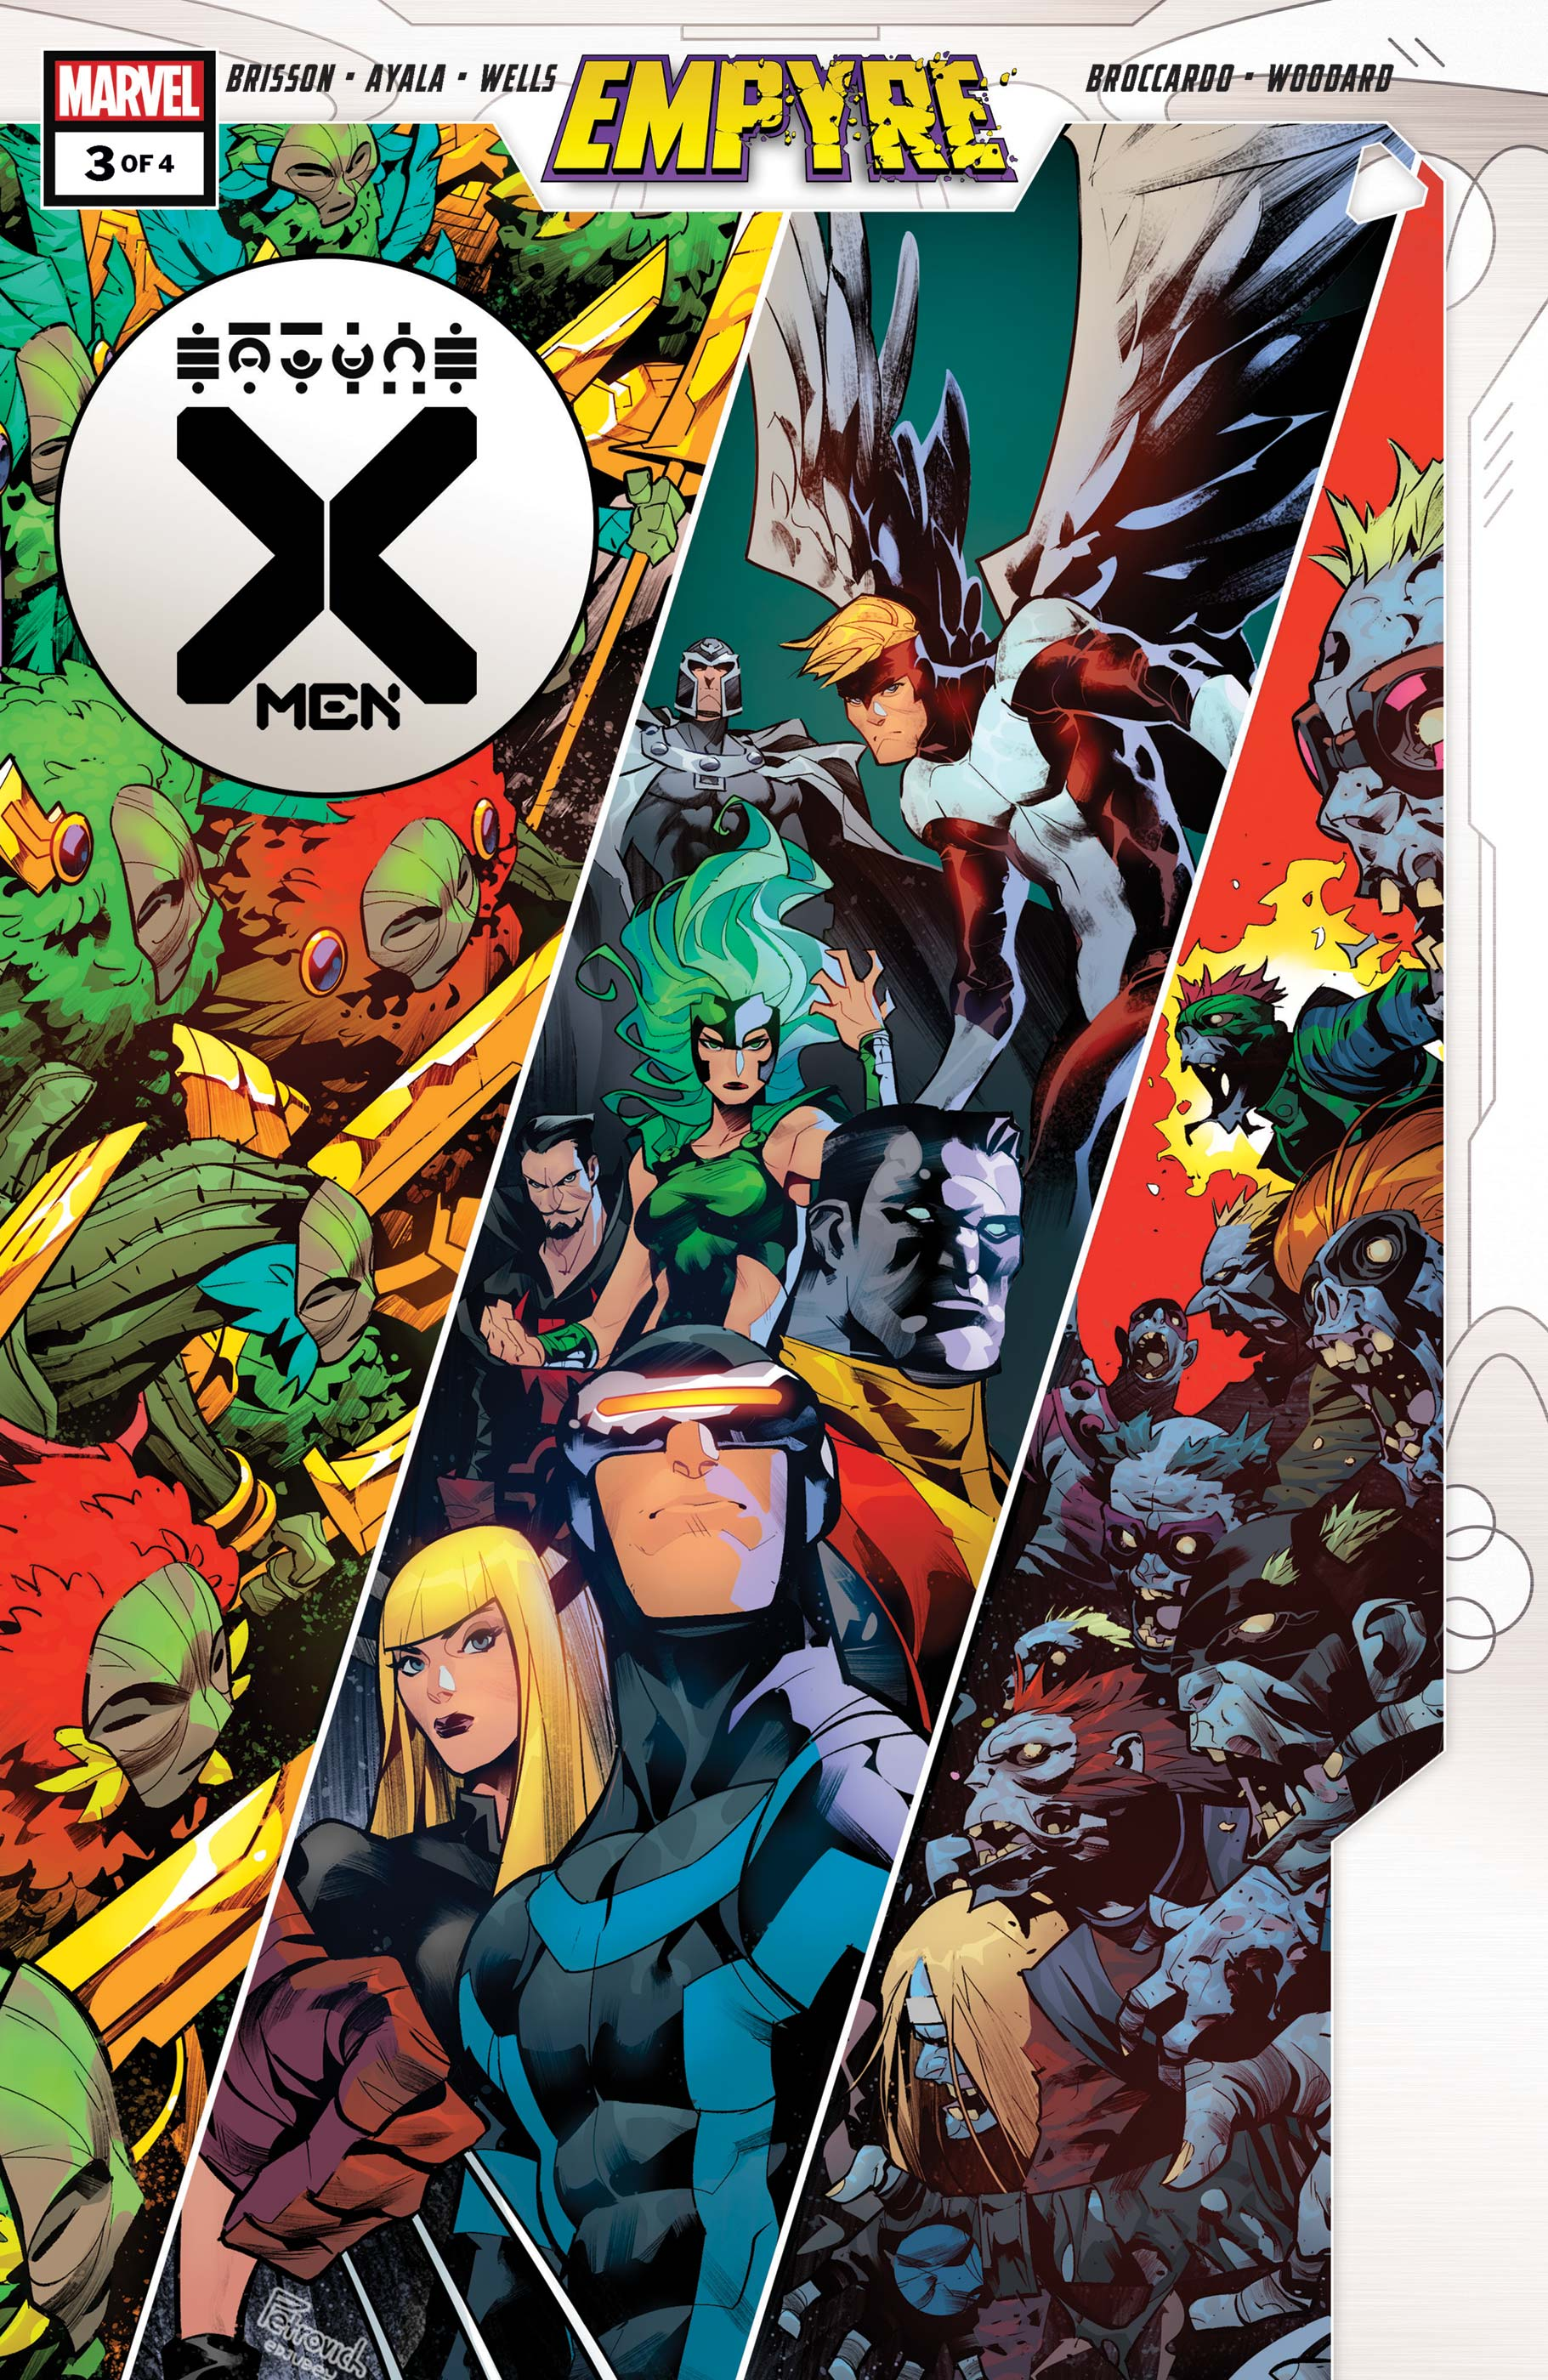 Empyre: X-Men (2020) #3 | Comic Issues | Marvel